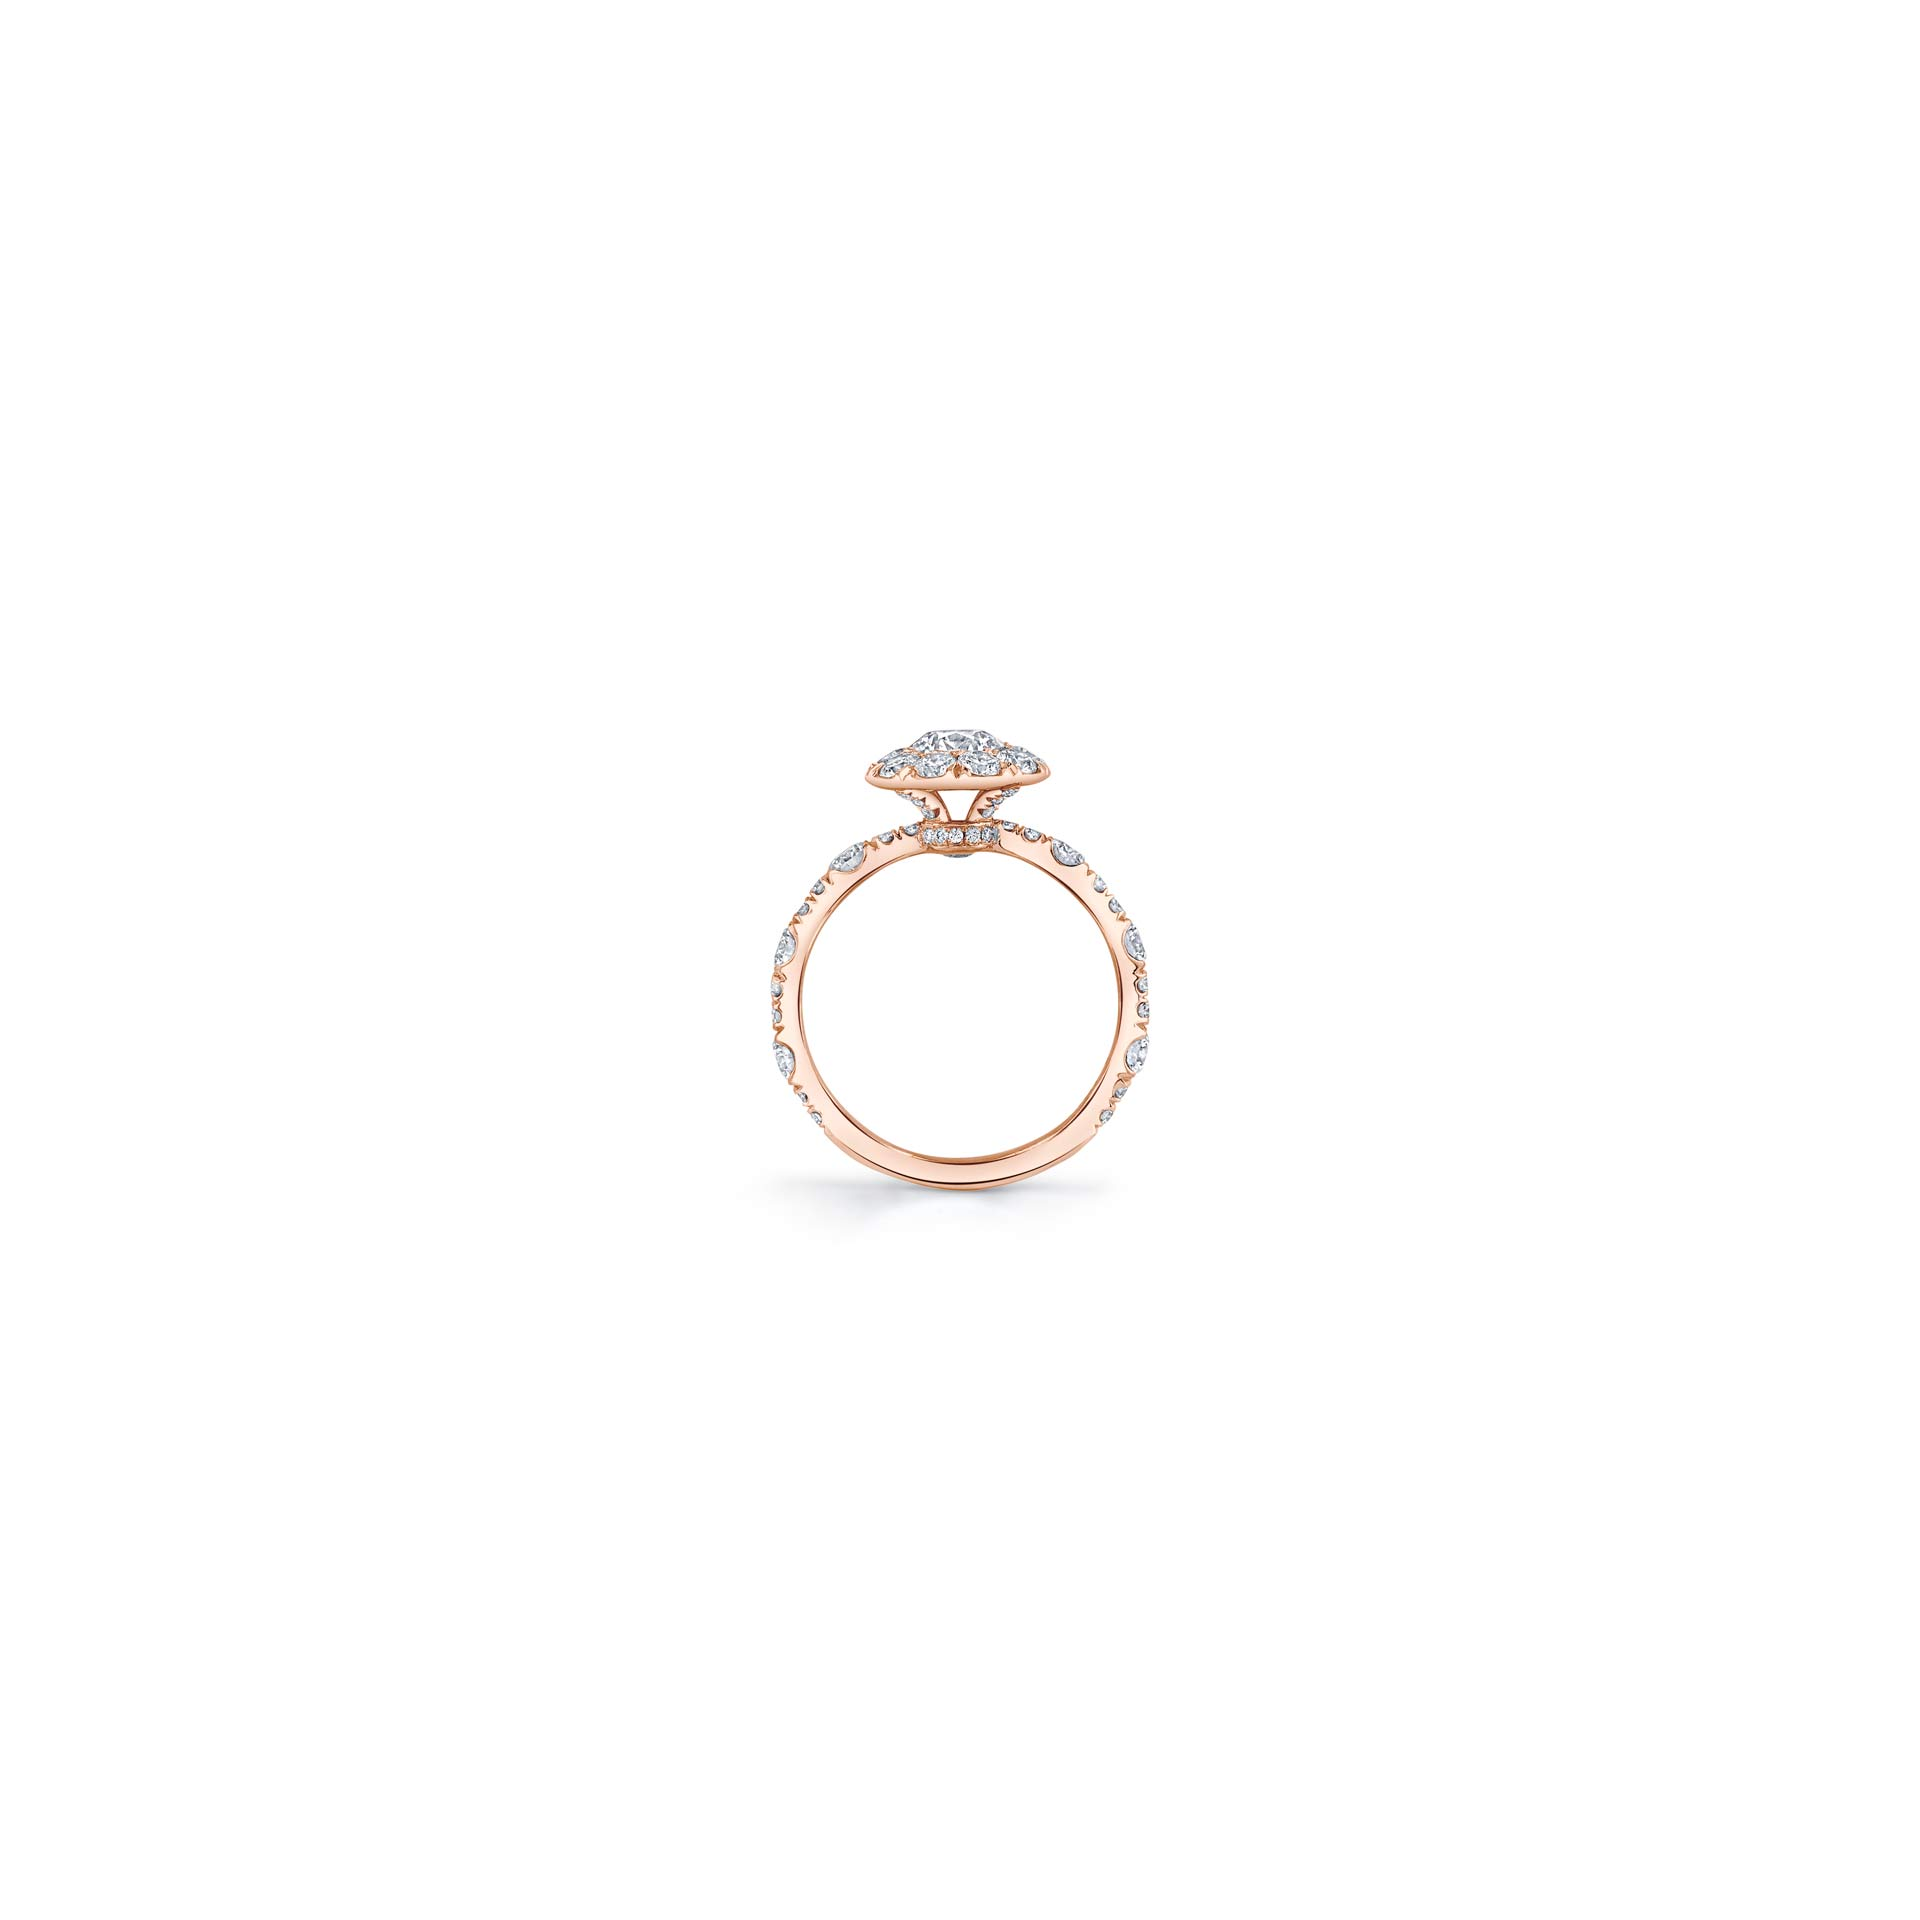 Yvonne Floating Round Brilliant Seamless Solitaire® Three Stone Engagement Ring with a diamond pavé wave in 18k Rose Gold Standing View by Oui by Jean Dousset